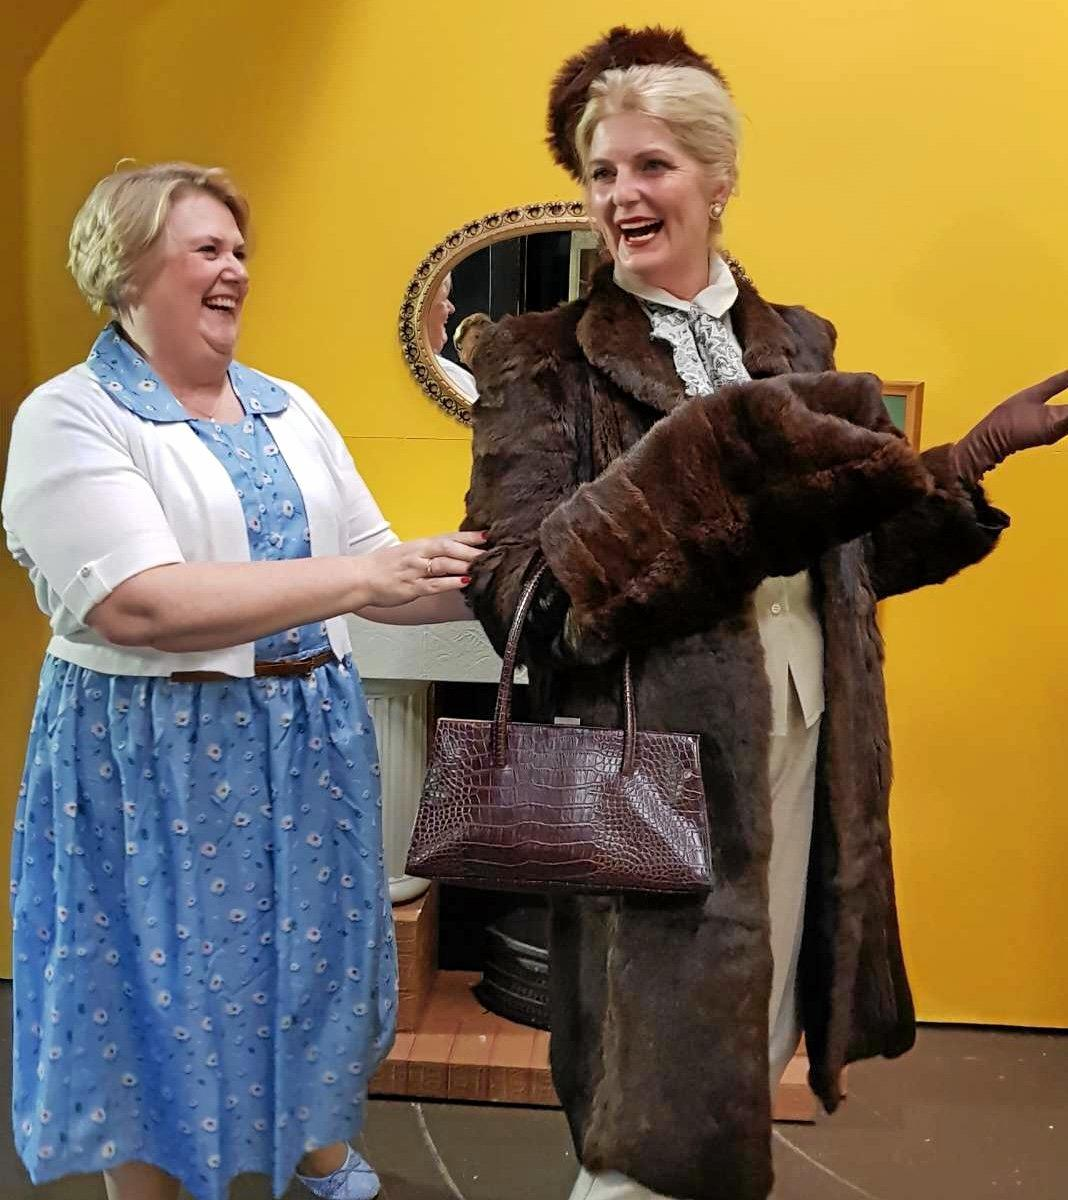 Leanne Bamford and Virginia Gray have been busy rehearsing for the past 12 weeks for the Ipswich Little Theatre's new production, The Cemetery Club.